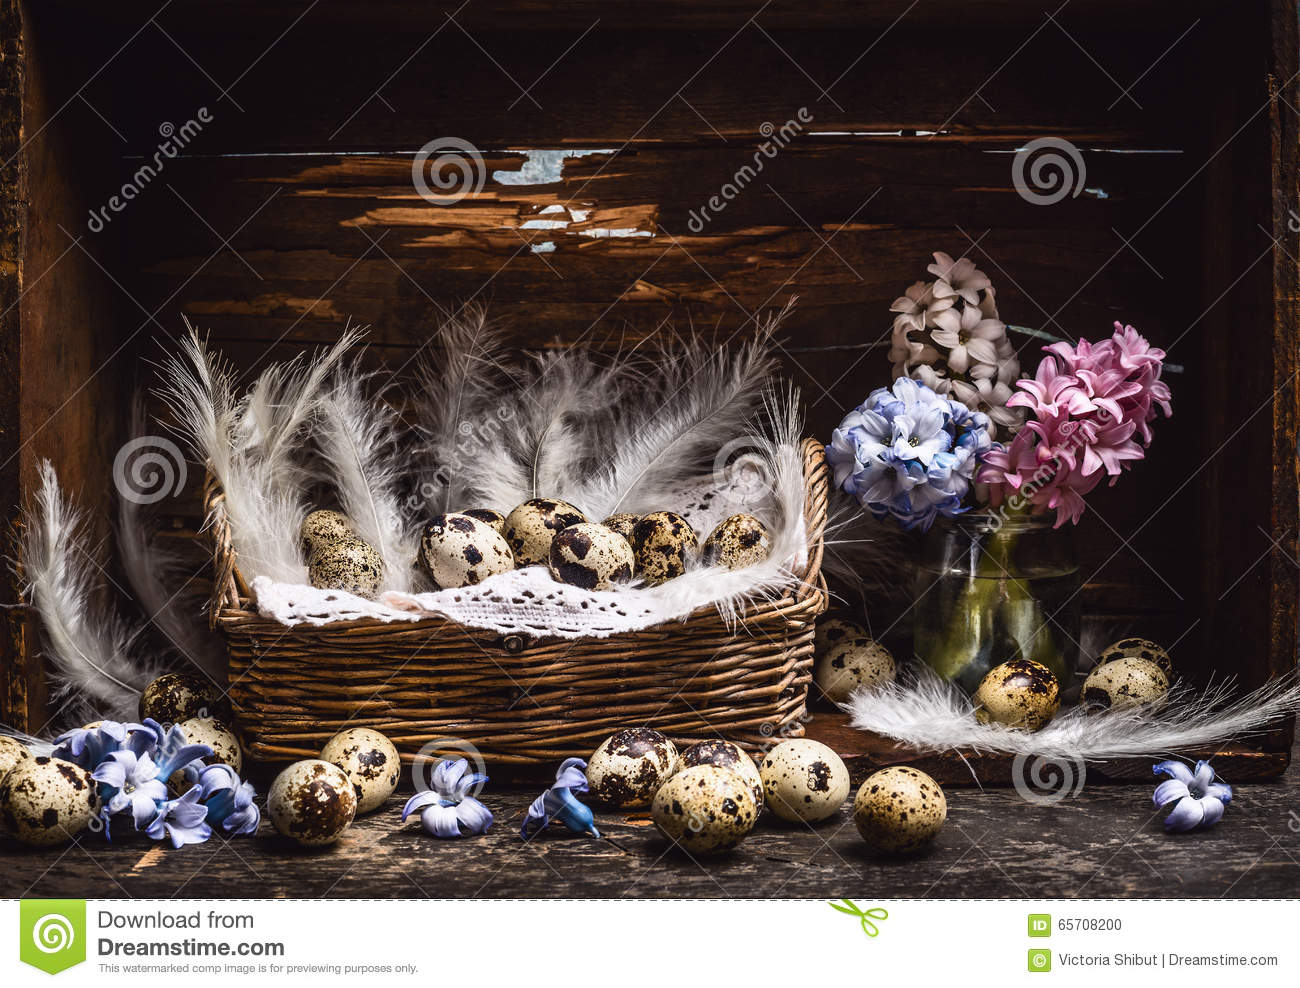 Basket with quail eggs and feathers and spring flowers Hyacinths bunch on vintage wooden table, over rustic background, side view